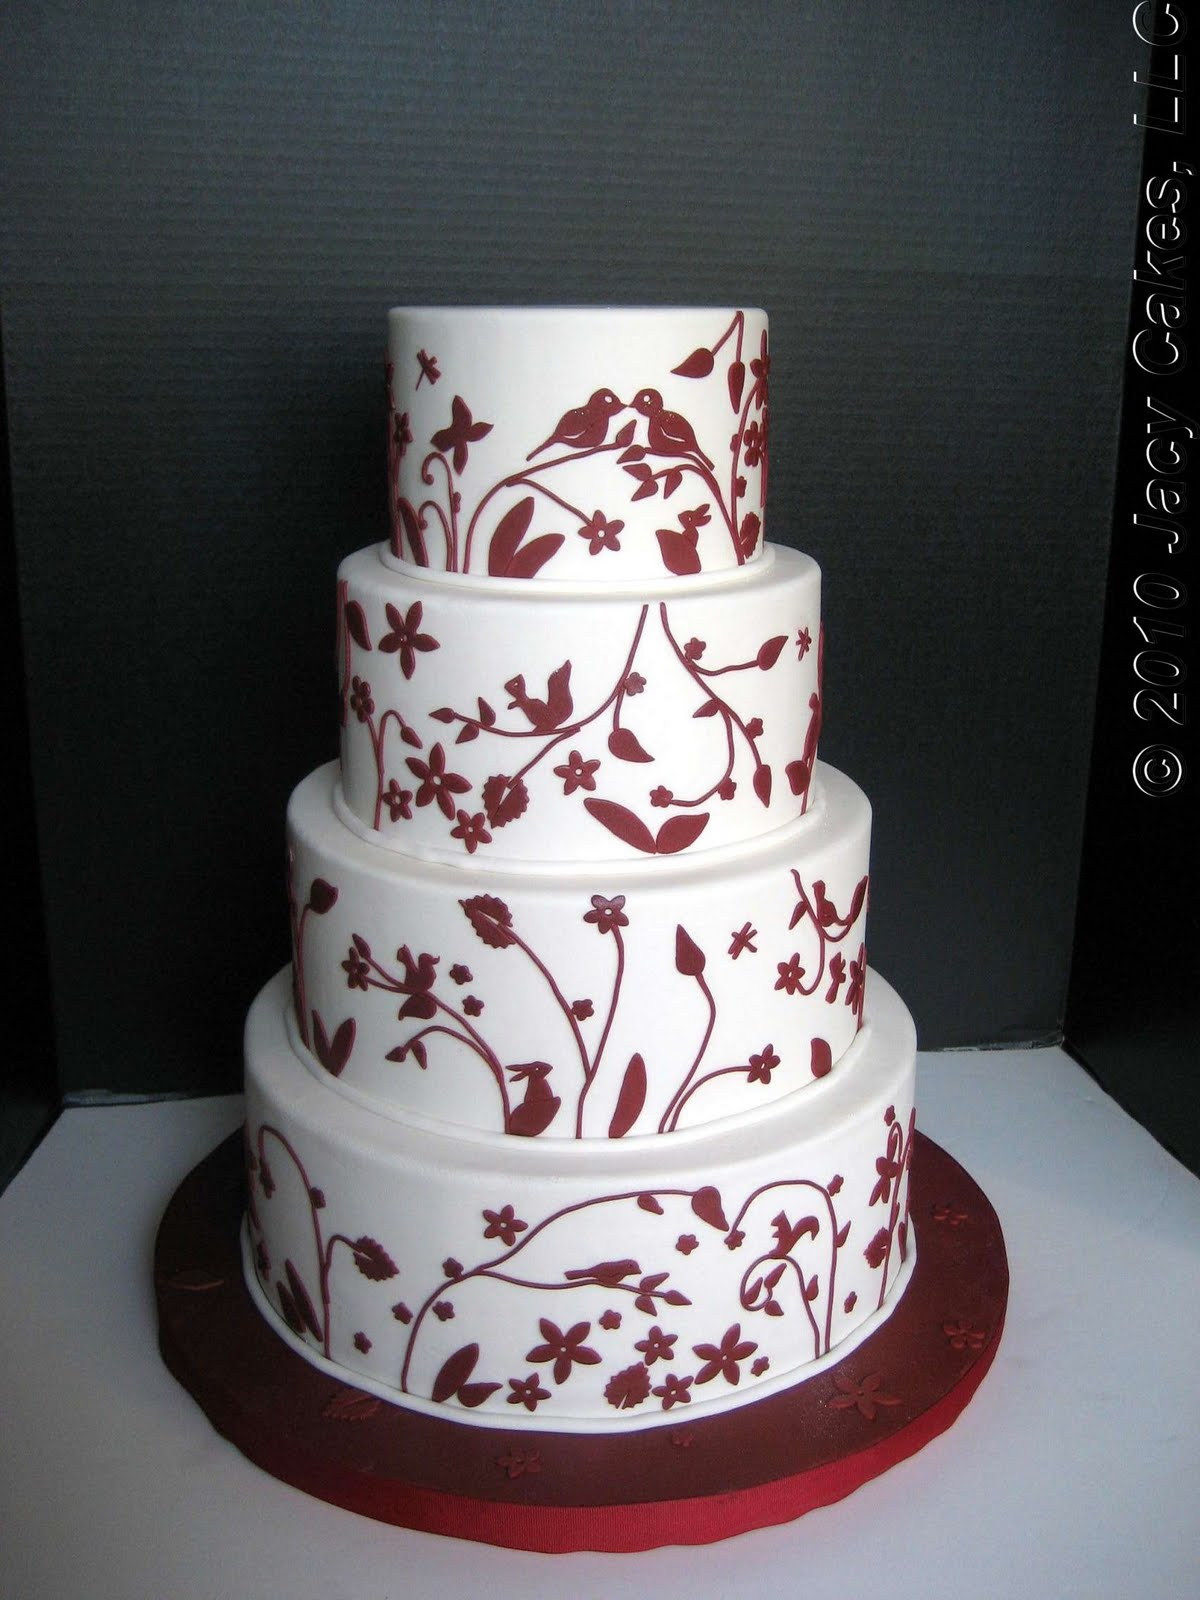 Wedding Cake Design Patterns : News from Jacy Cakes: China Pattern Wedding Cake